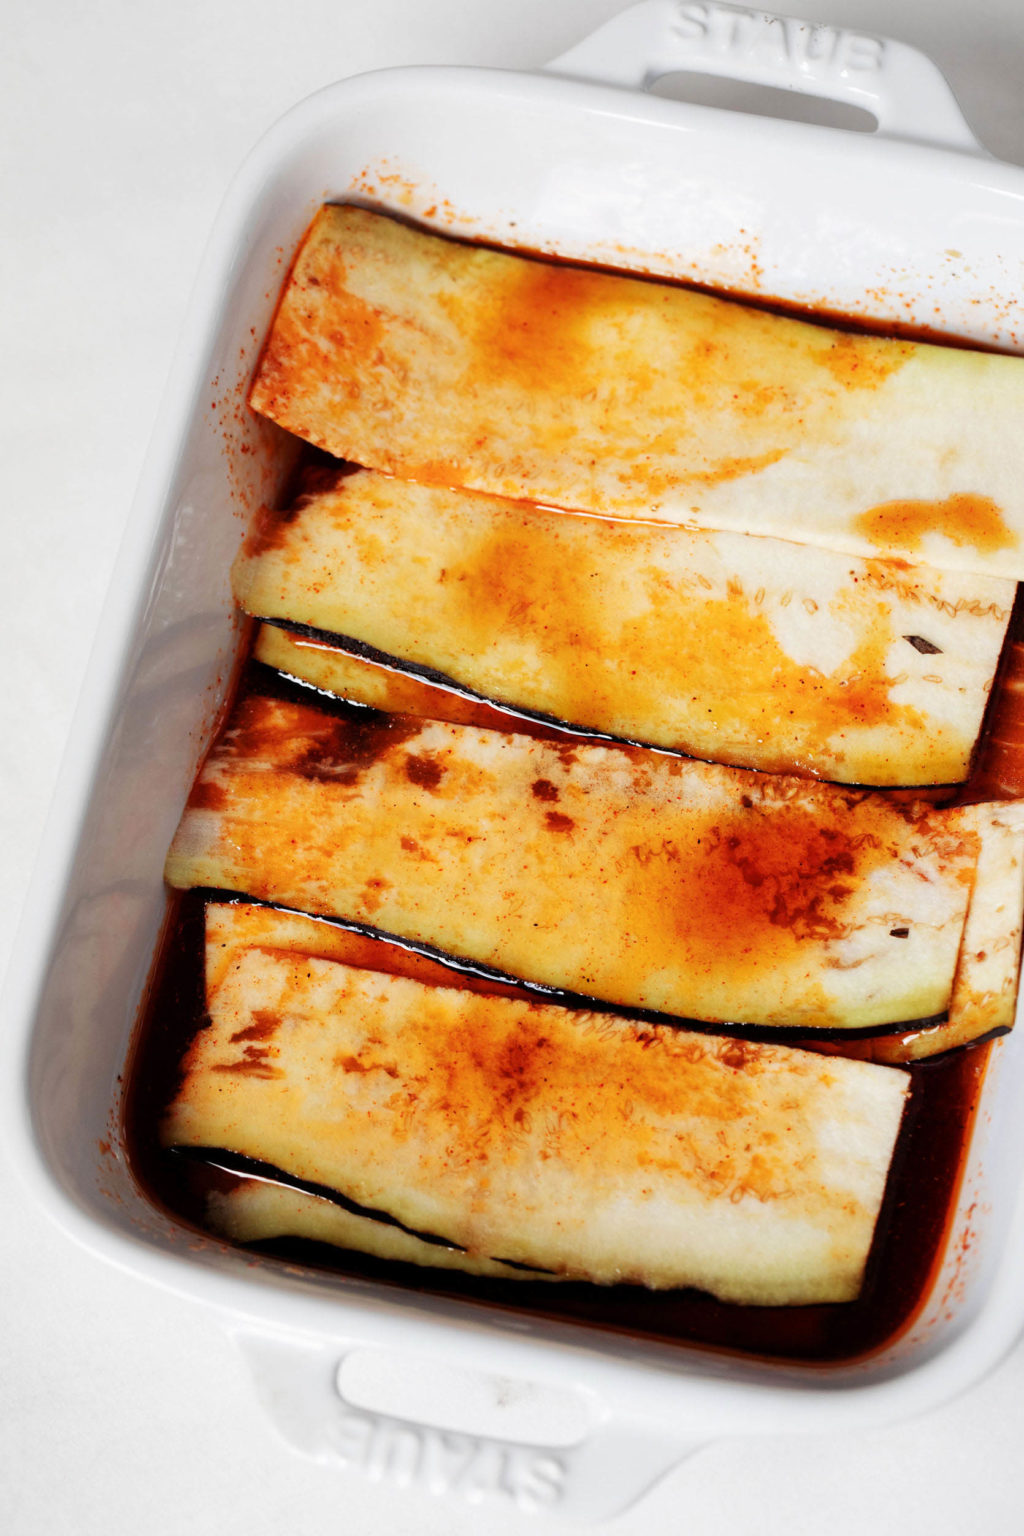 Very thin slices of eggplant are in a baking dish. They're being marinated in an orange, brothy liquid.